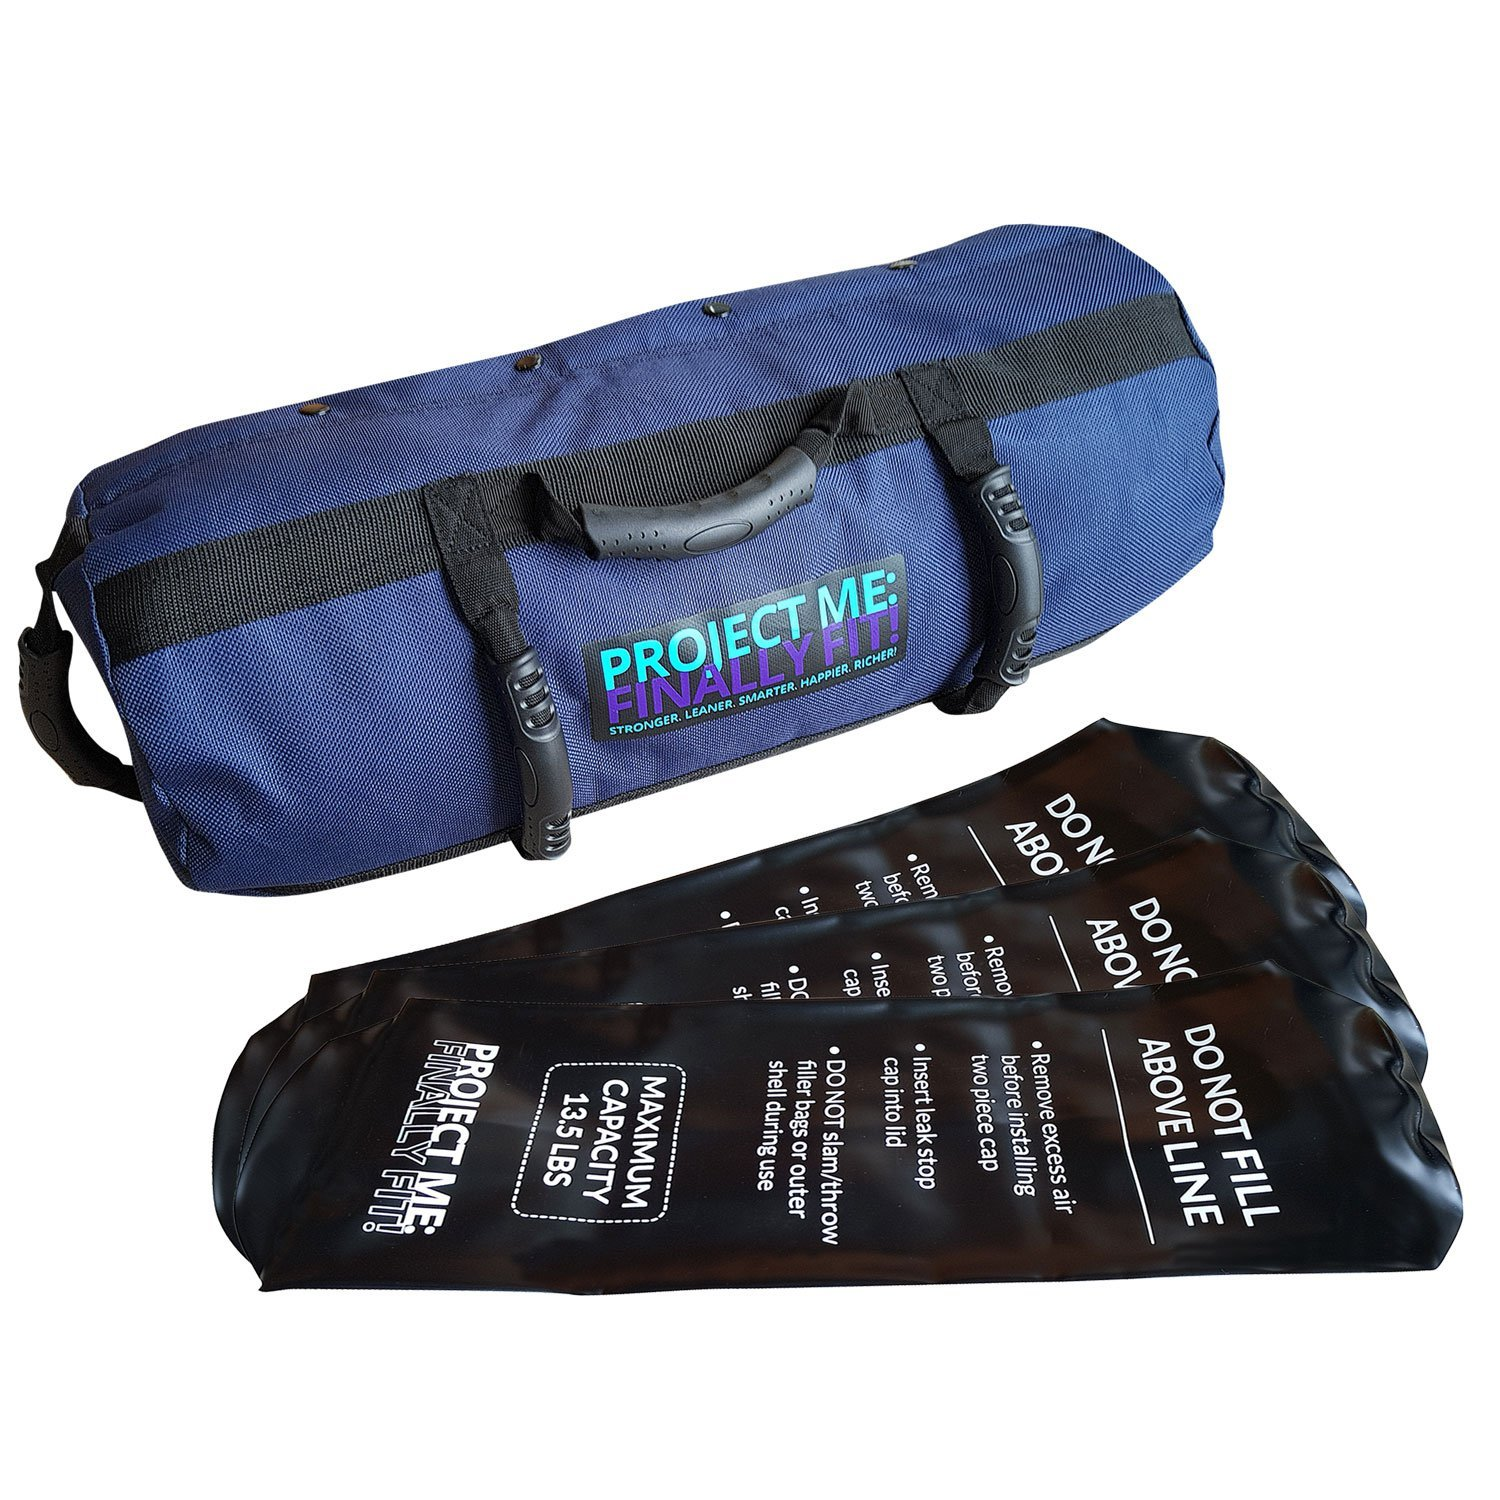 fe1806a7c484 Get Quotations · Adjustable Fitness Sandbag With Handles And Inner Water  Filler Bags